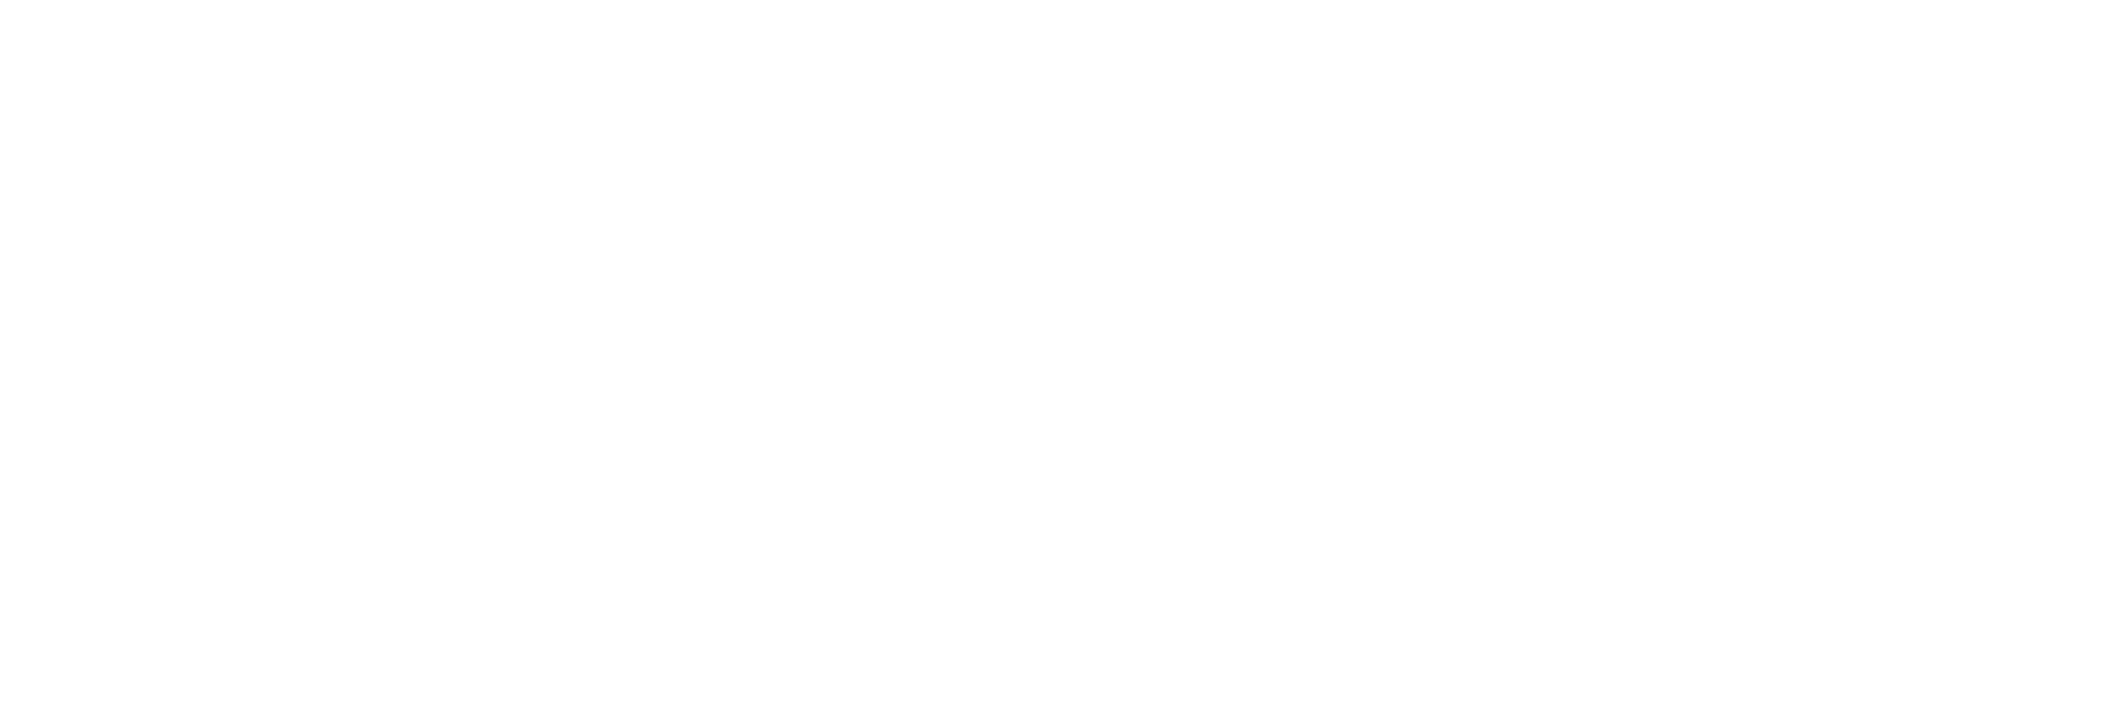 Liebe Photography